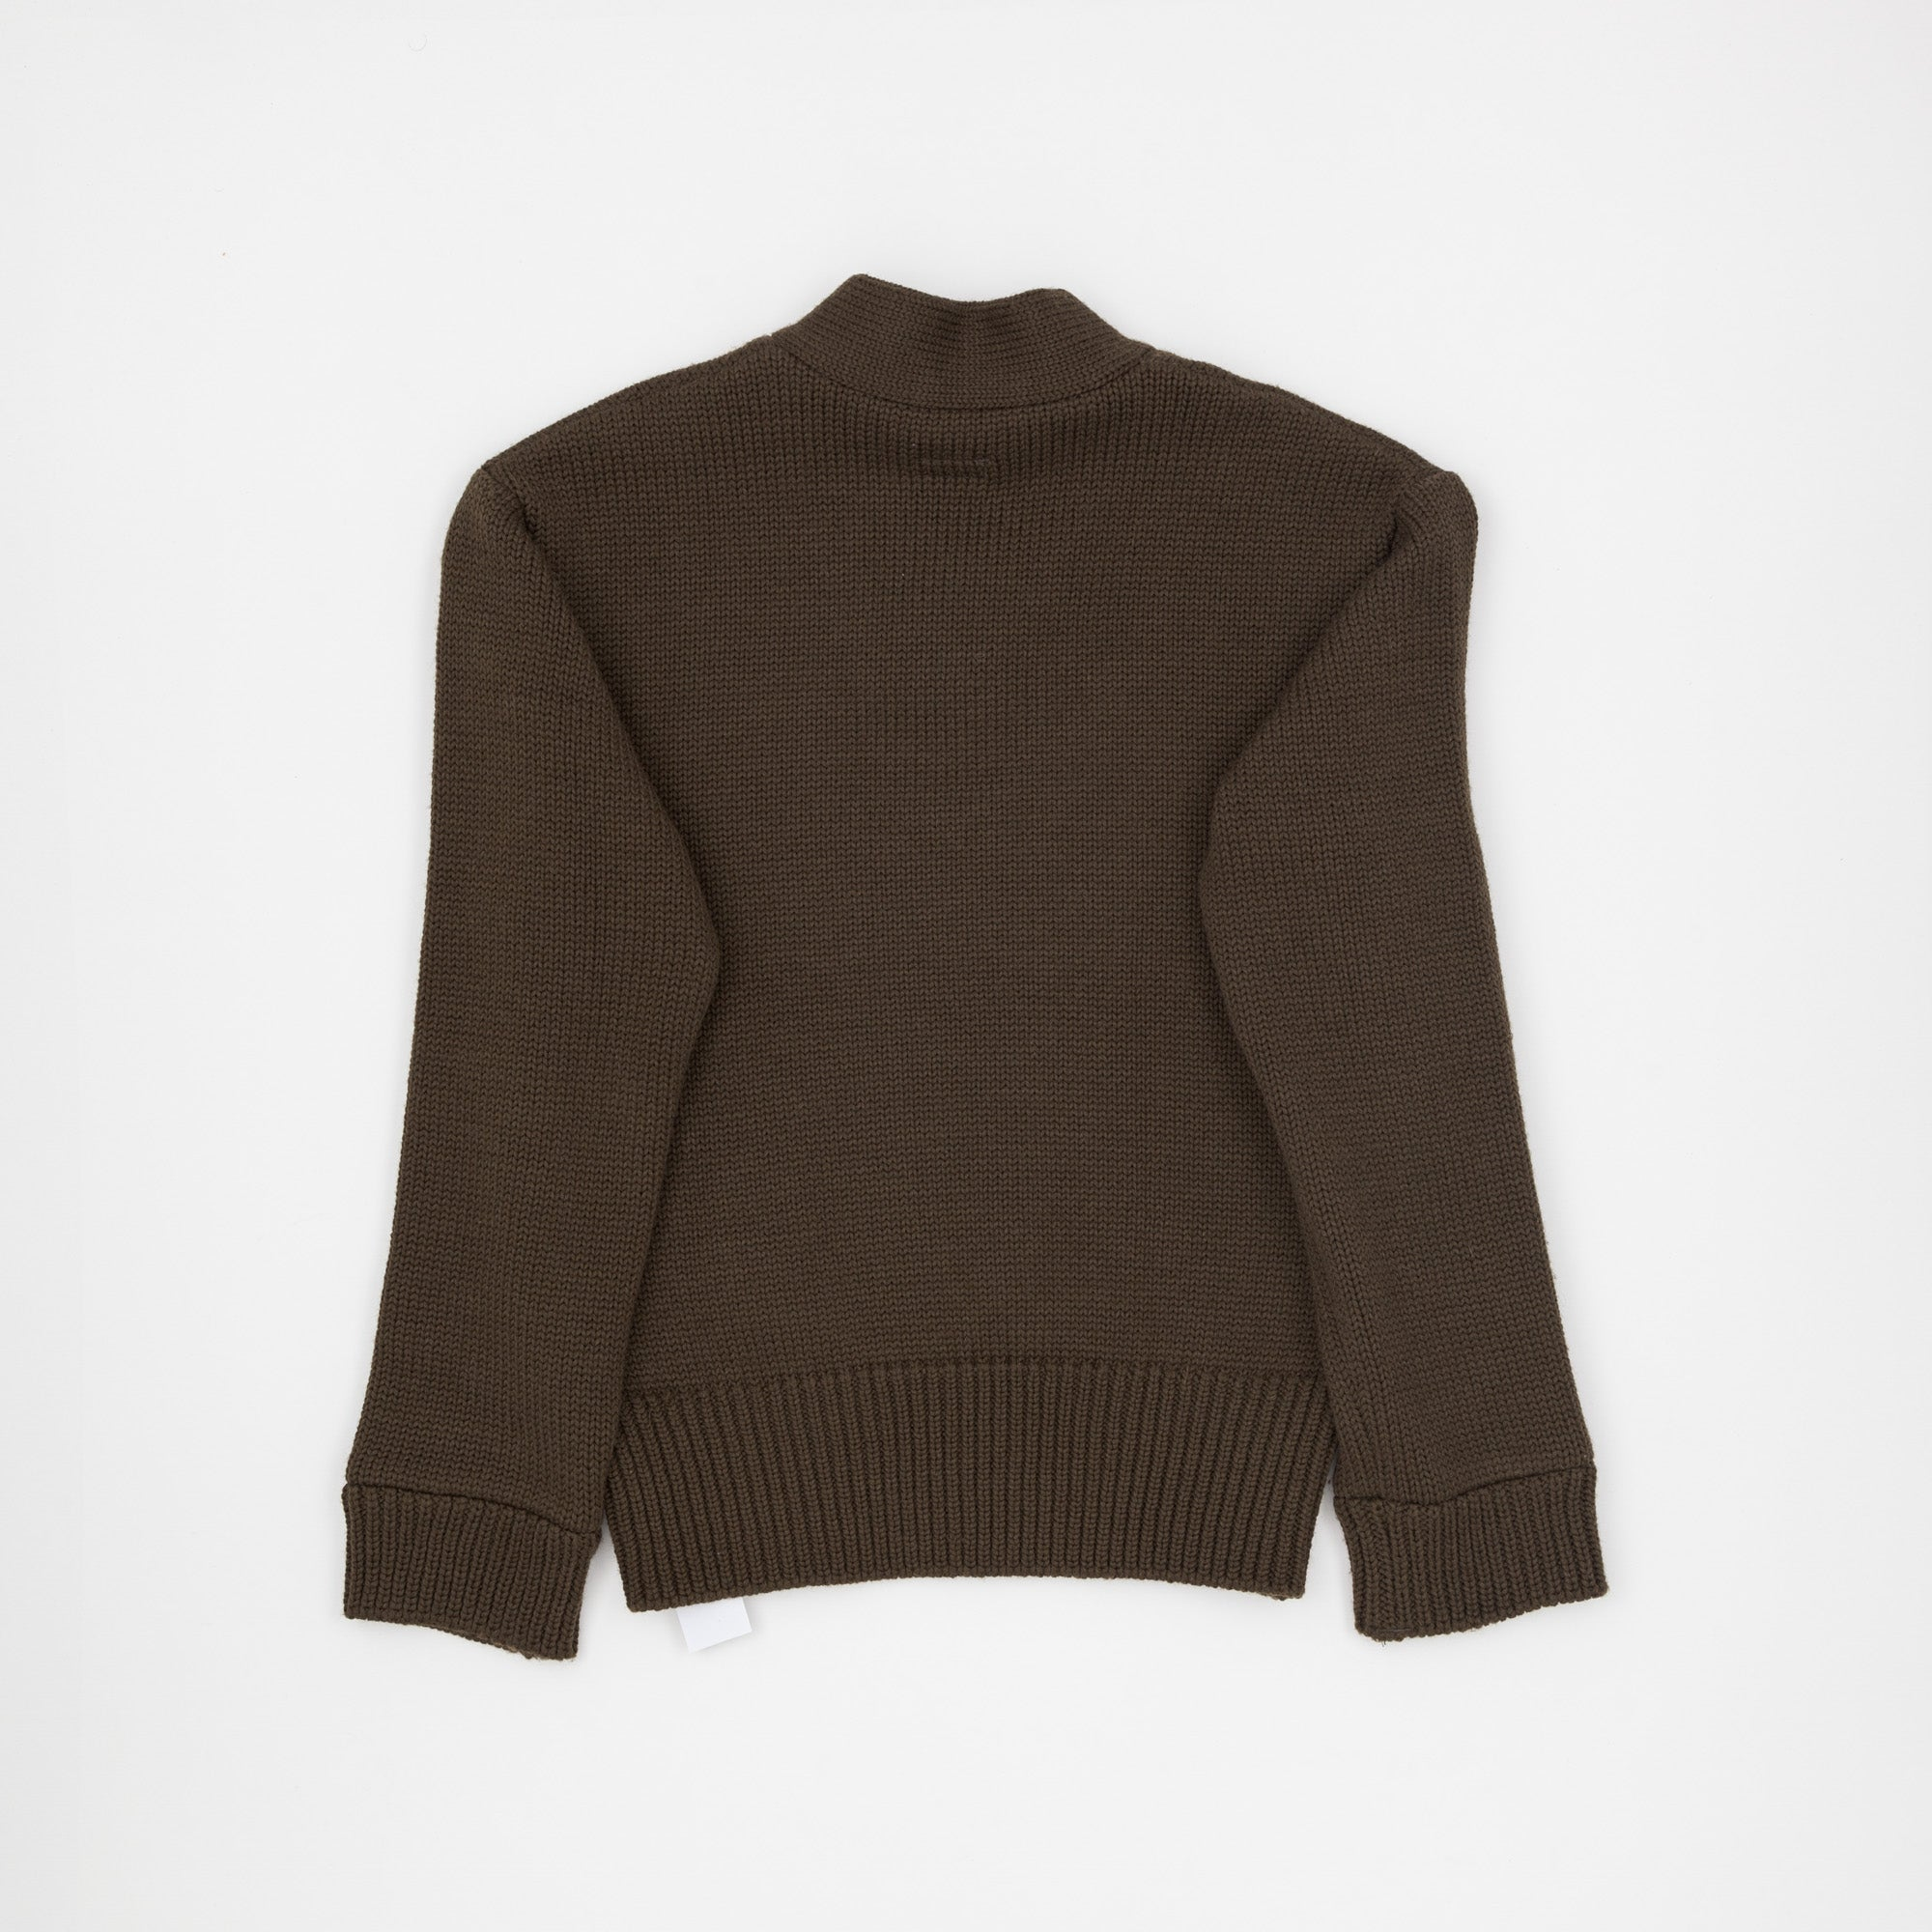 Type A-1 Knitted Sweater